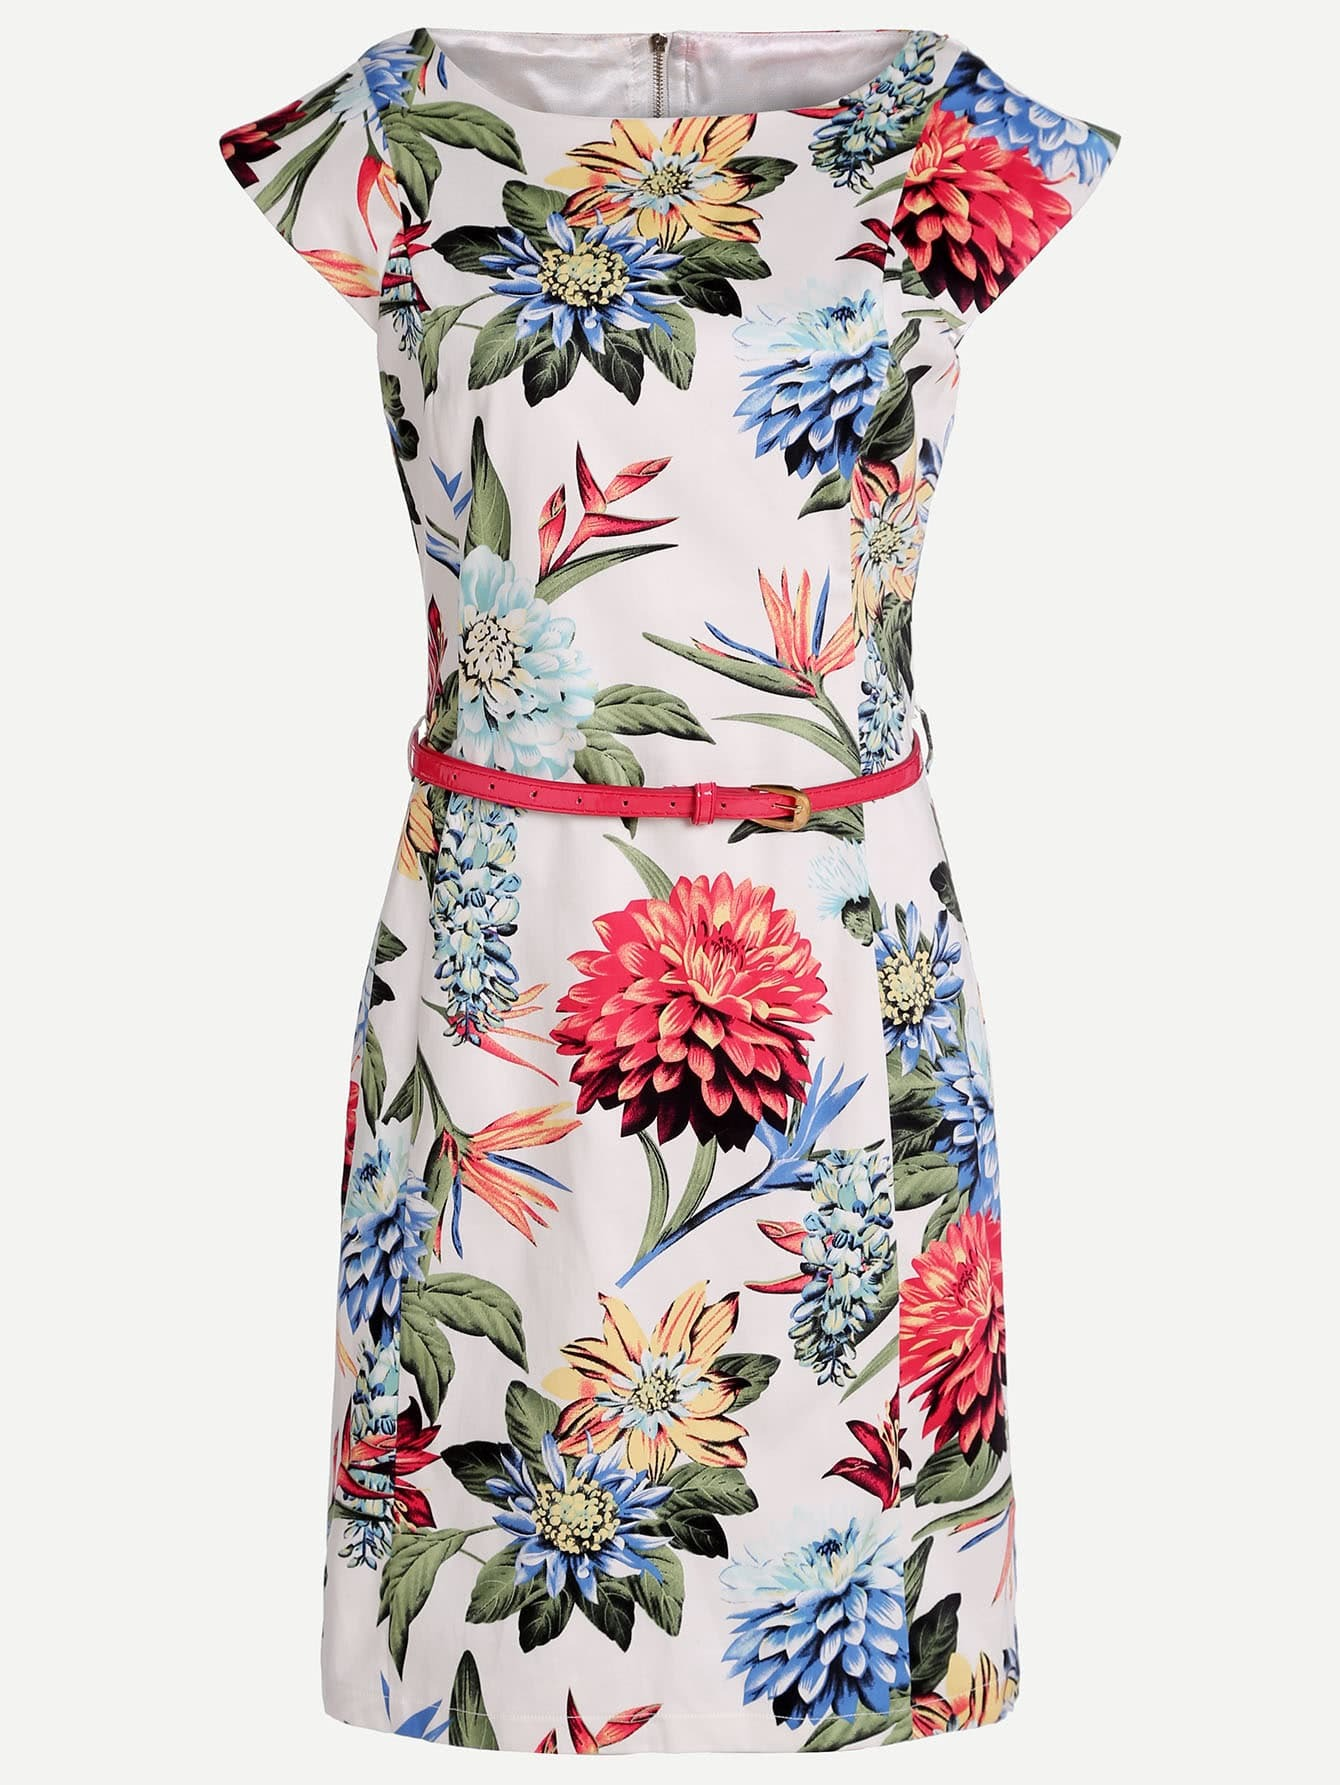 Floral Print Sleeveless Dress With BeltFloral Print Sleeveless Dress With Belt<br><br>color: Multicolor<br>size: S